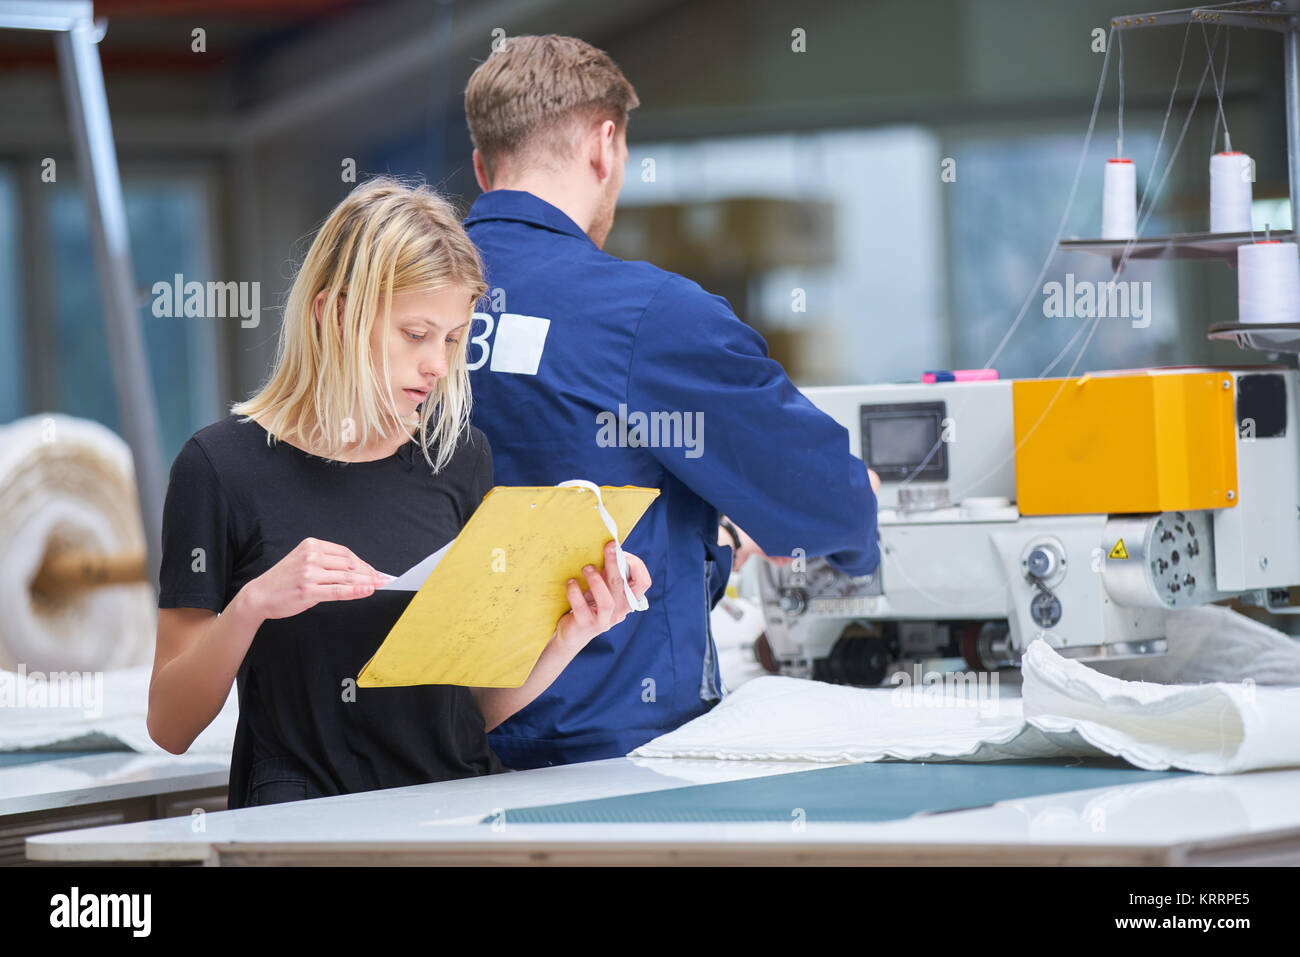 Seamstress is new assigned to a machine in a textile factory, the foreman explains something - Stock Image